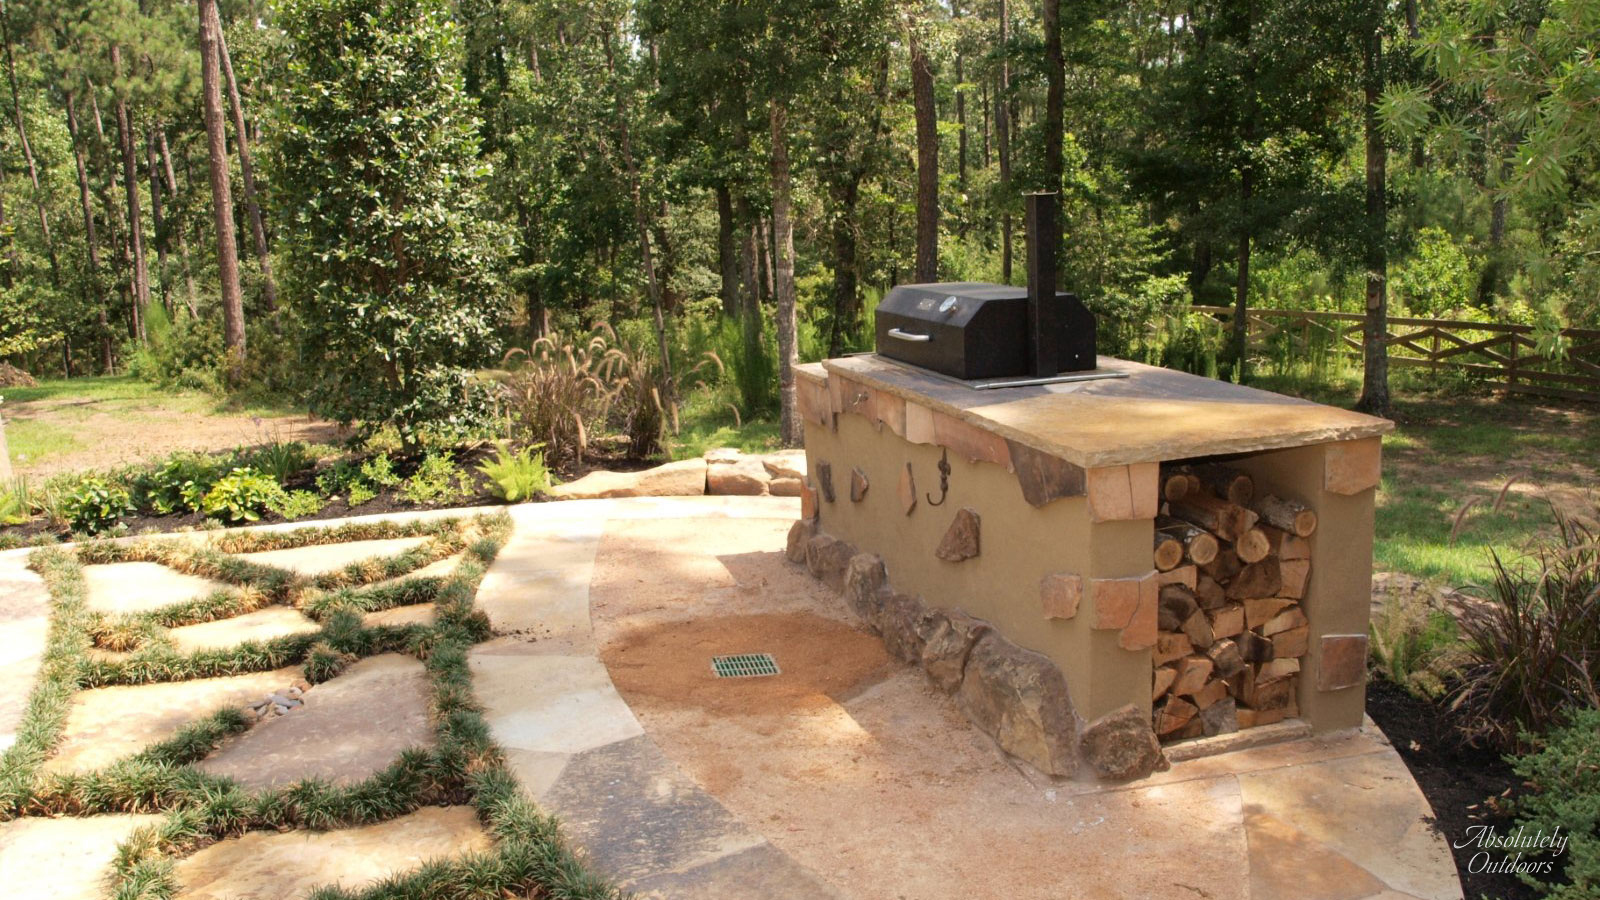 The Woodlands Custom Outdoor Grill Landscape Design